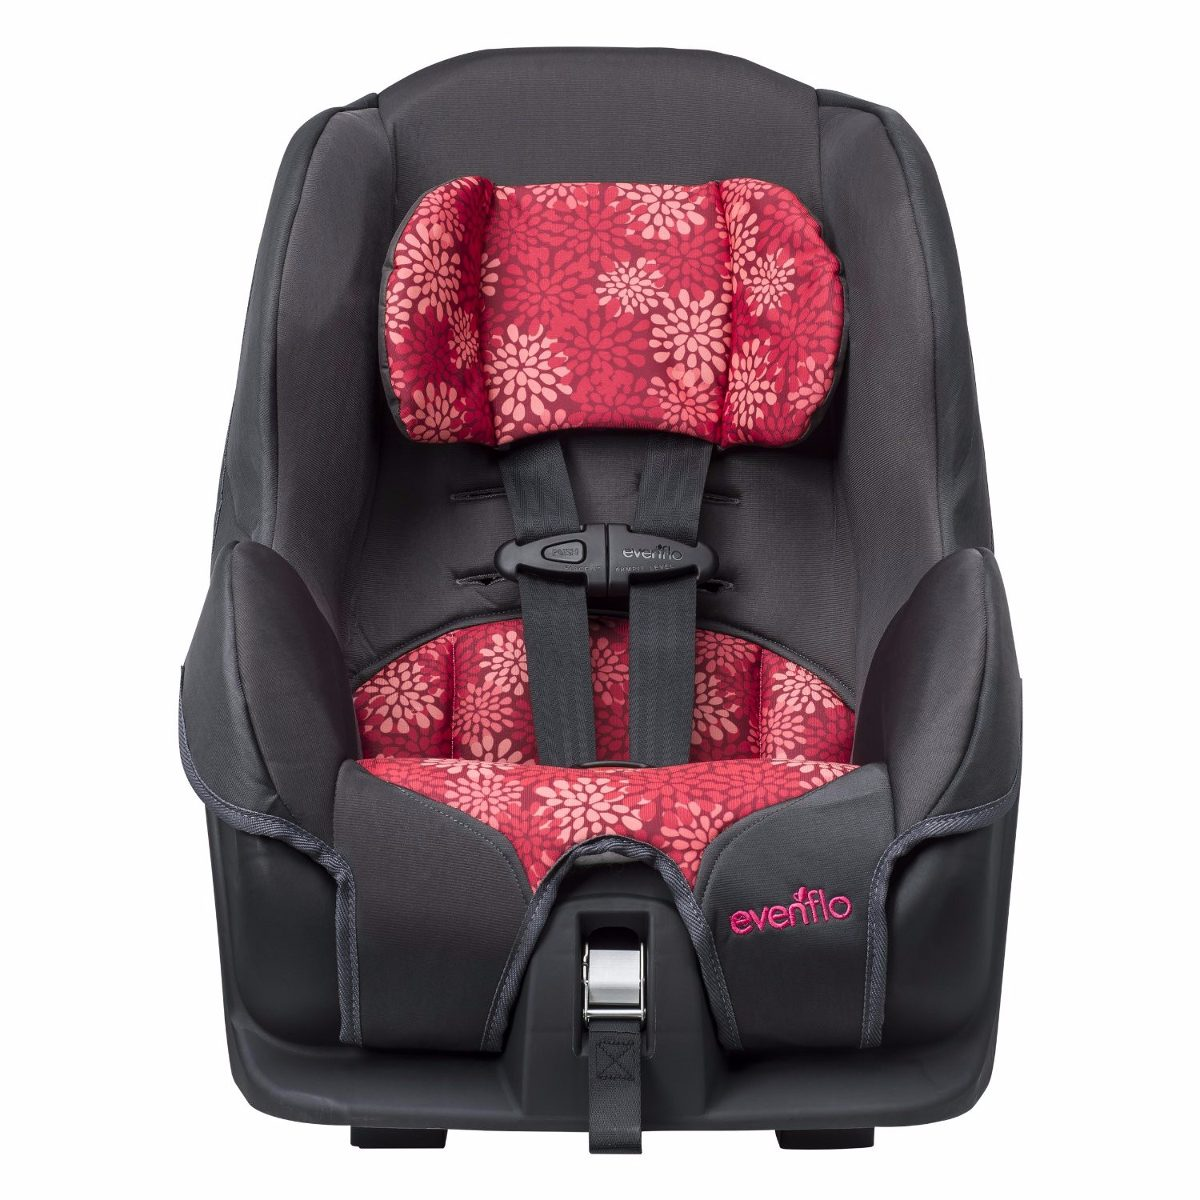 autoasiento bebe infantil evenflo tribute car seat convertib 1 en mercadolibre. Black Bedroom Furniture Sets. Home Design Ideas